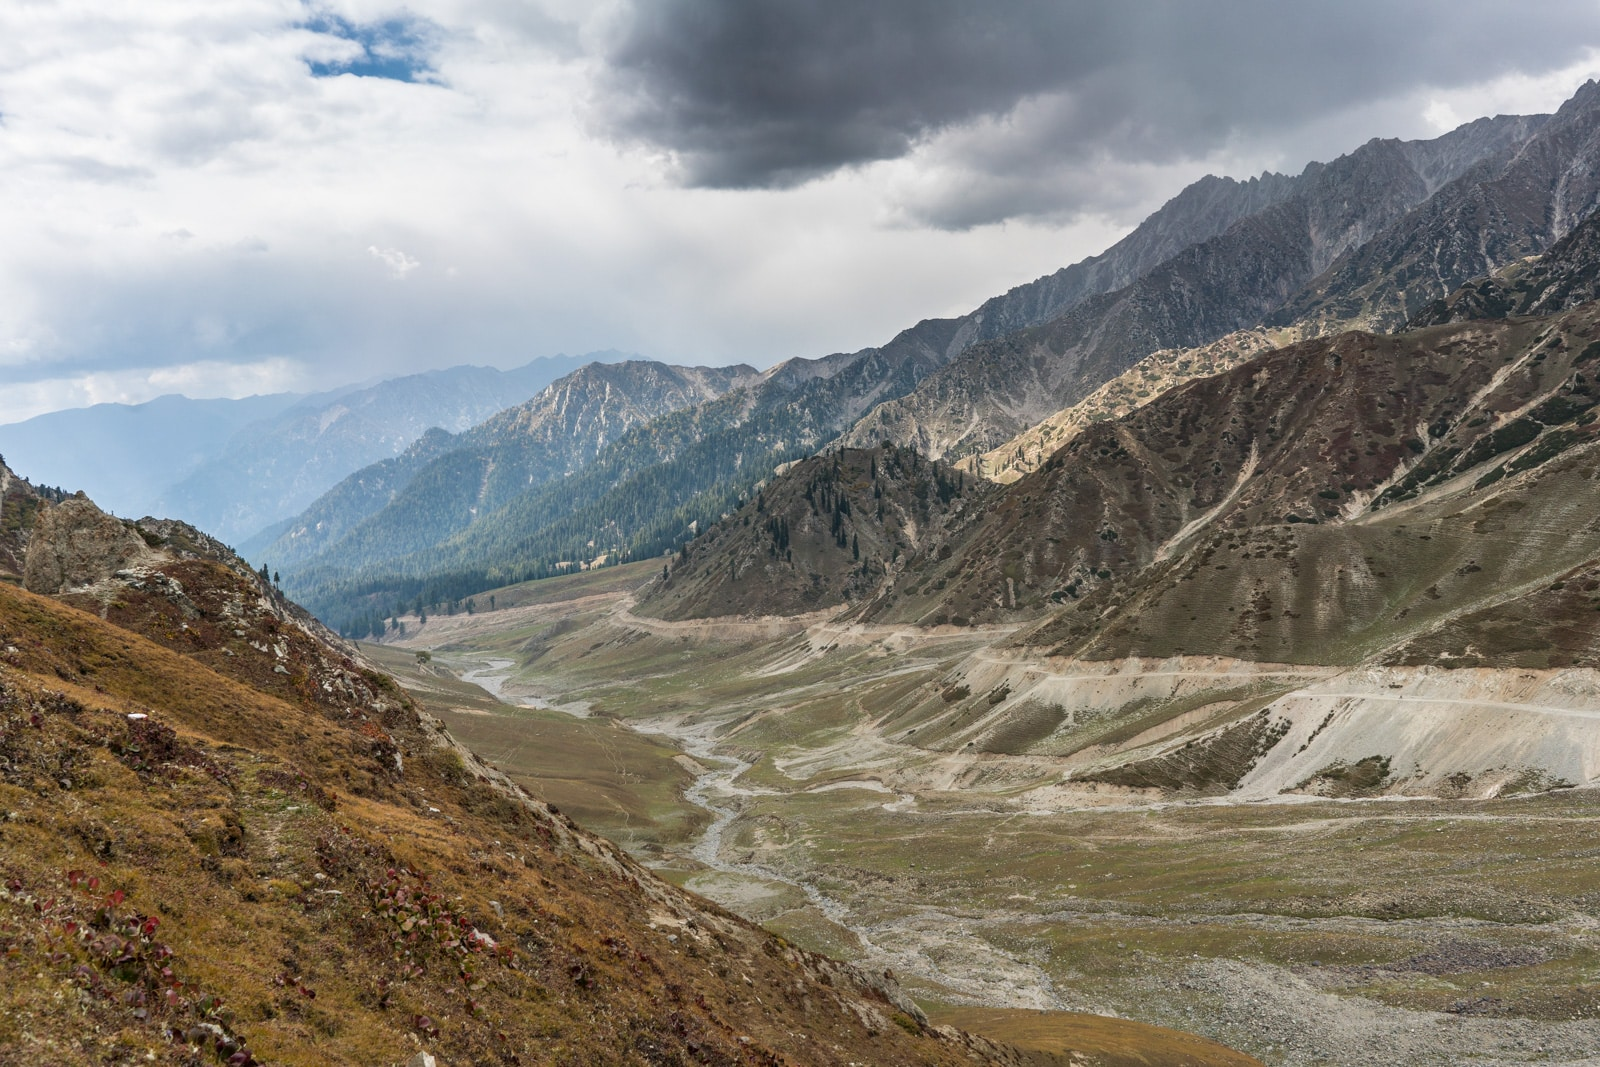 View of a mountain pass between Swat Valley and Upper Dir district